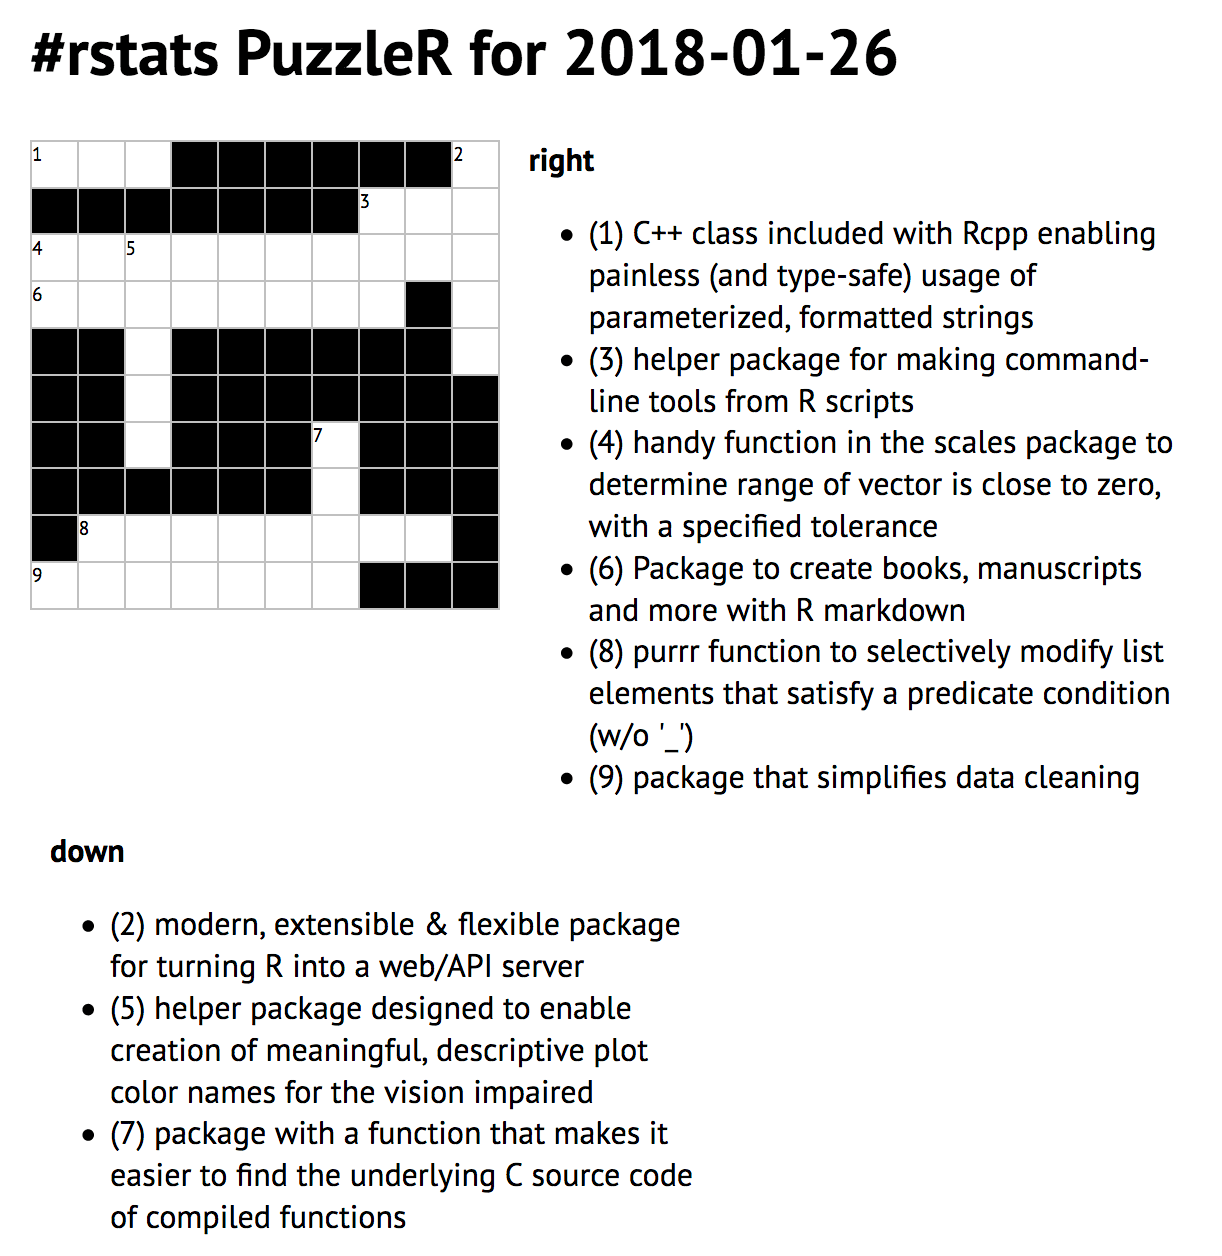 The Friday #rstats PuzzleR : 2018-01-26 | rud is